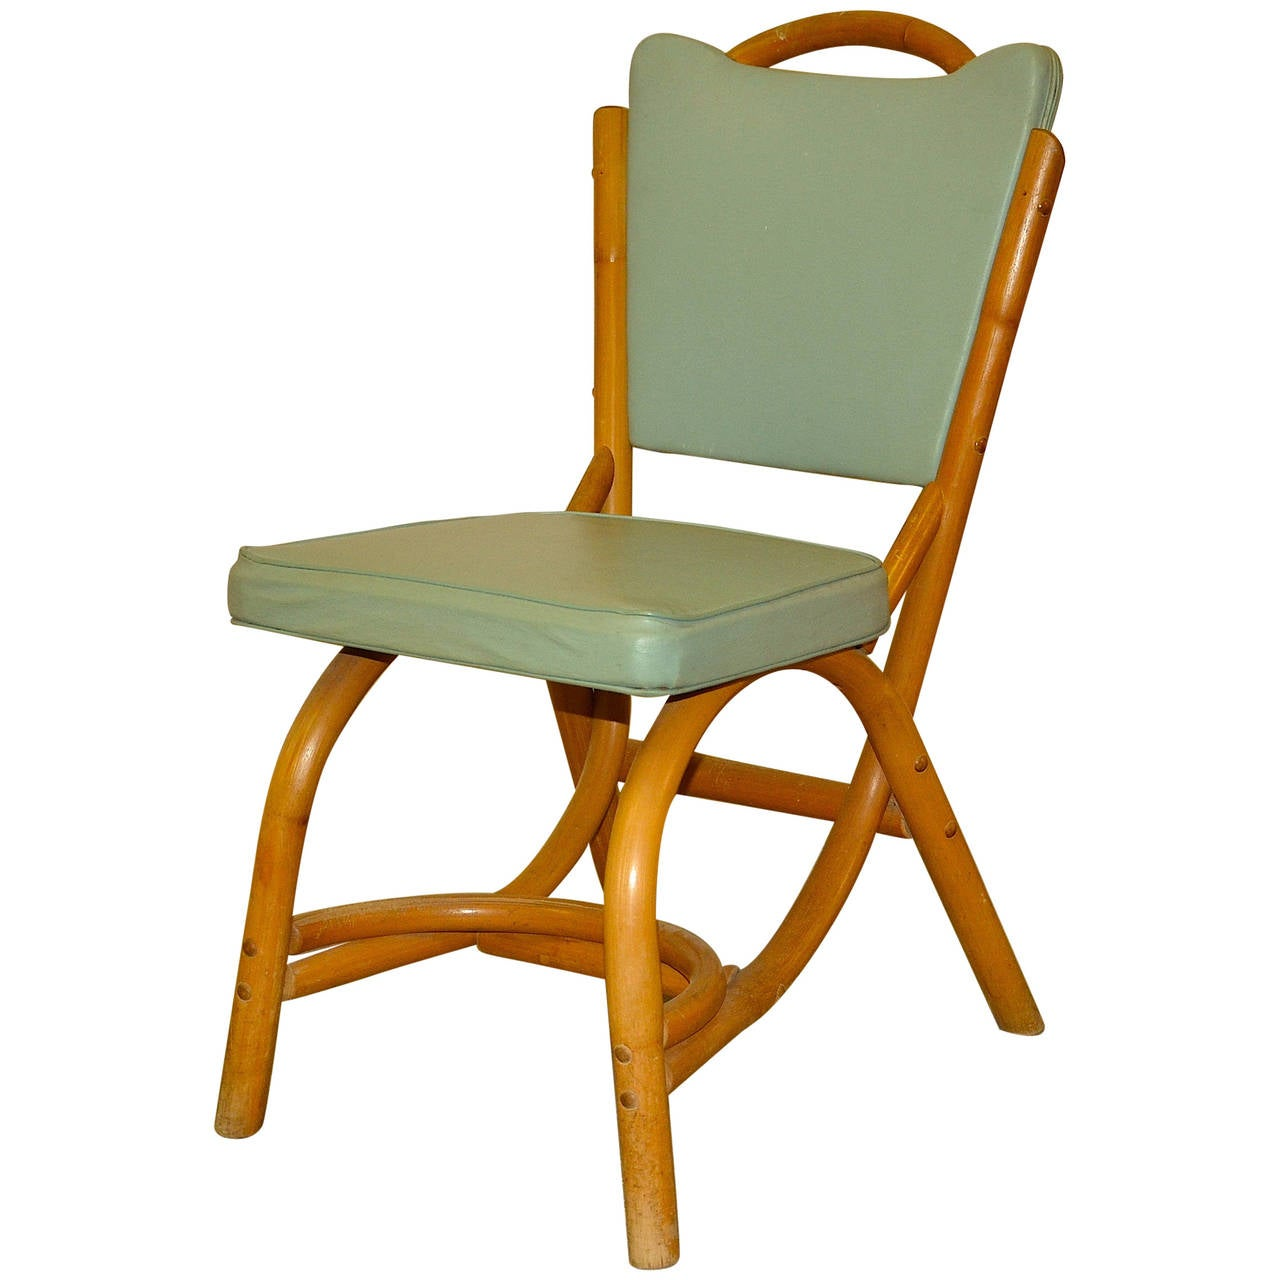 1960s cool midcentury bamboo side chair tommi parzinger for Sixties style chairs